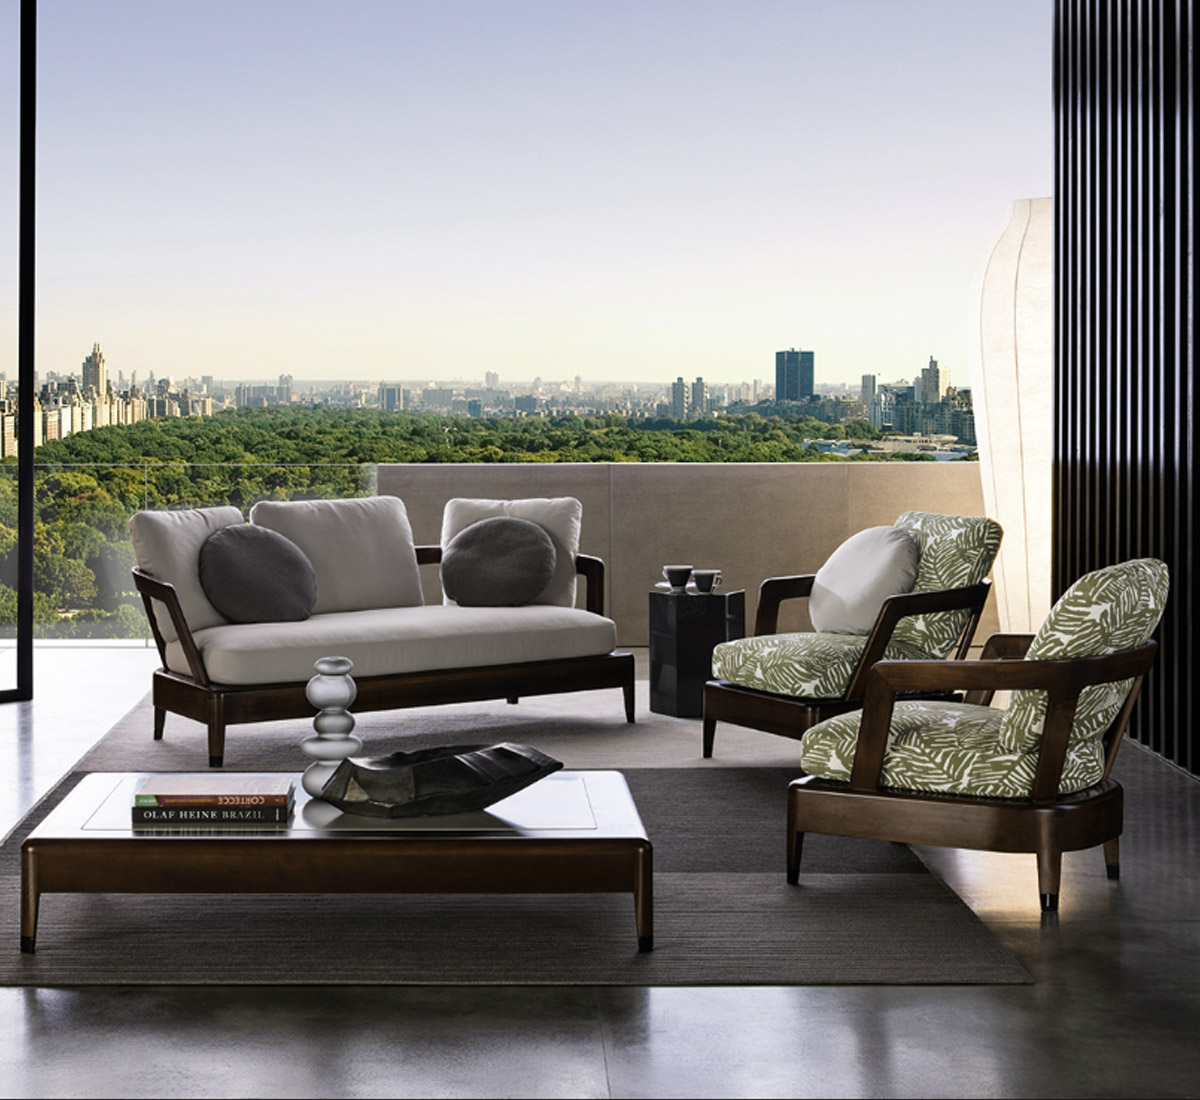 Virginia Divano Outdoor di Minotti | Divani e Poltrone - Outdoor ...